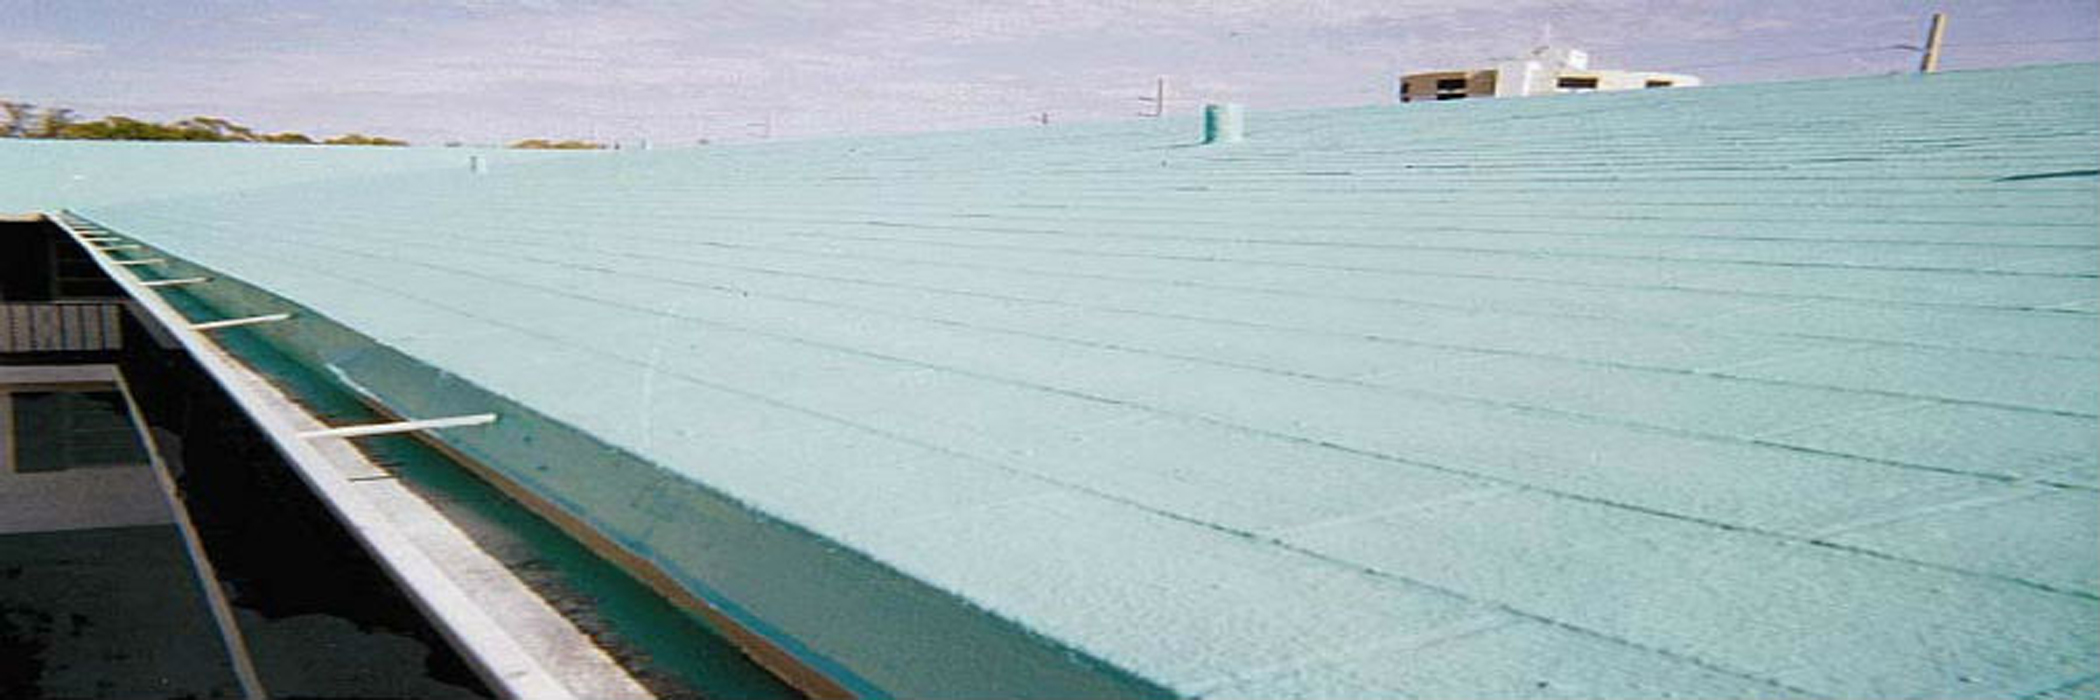 The Roof Store Roof Painting Contractor Roof Restoration Company Roof Coating